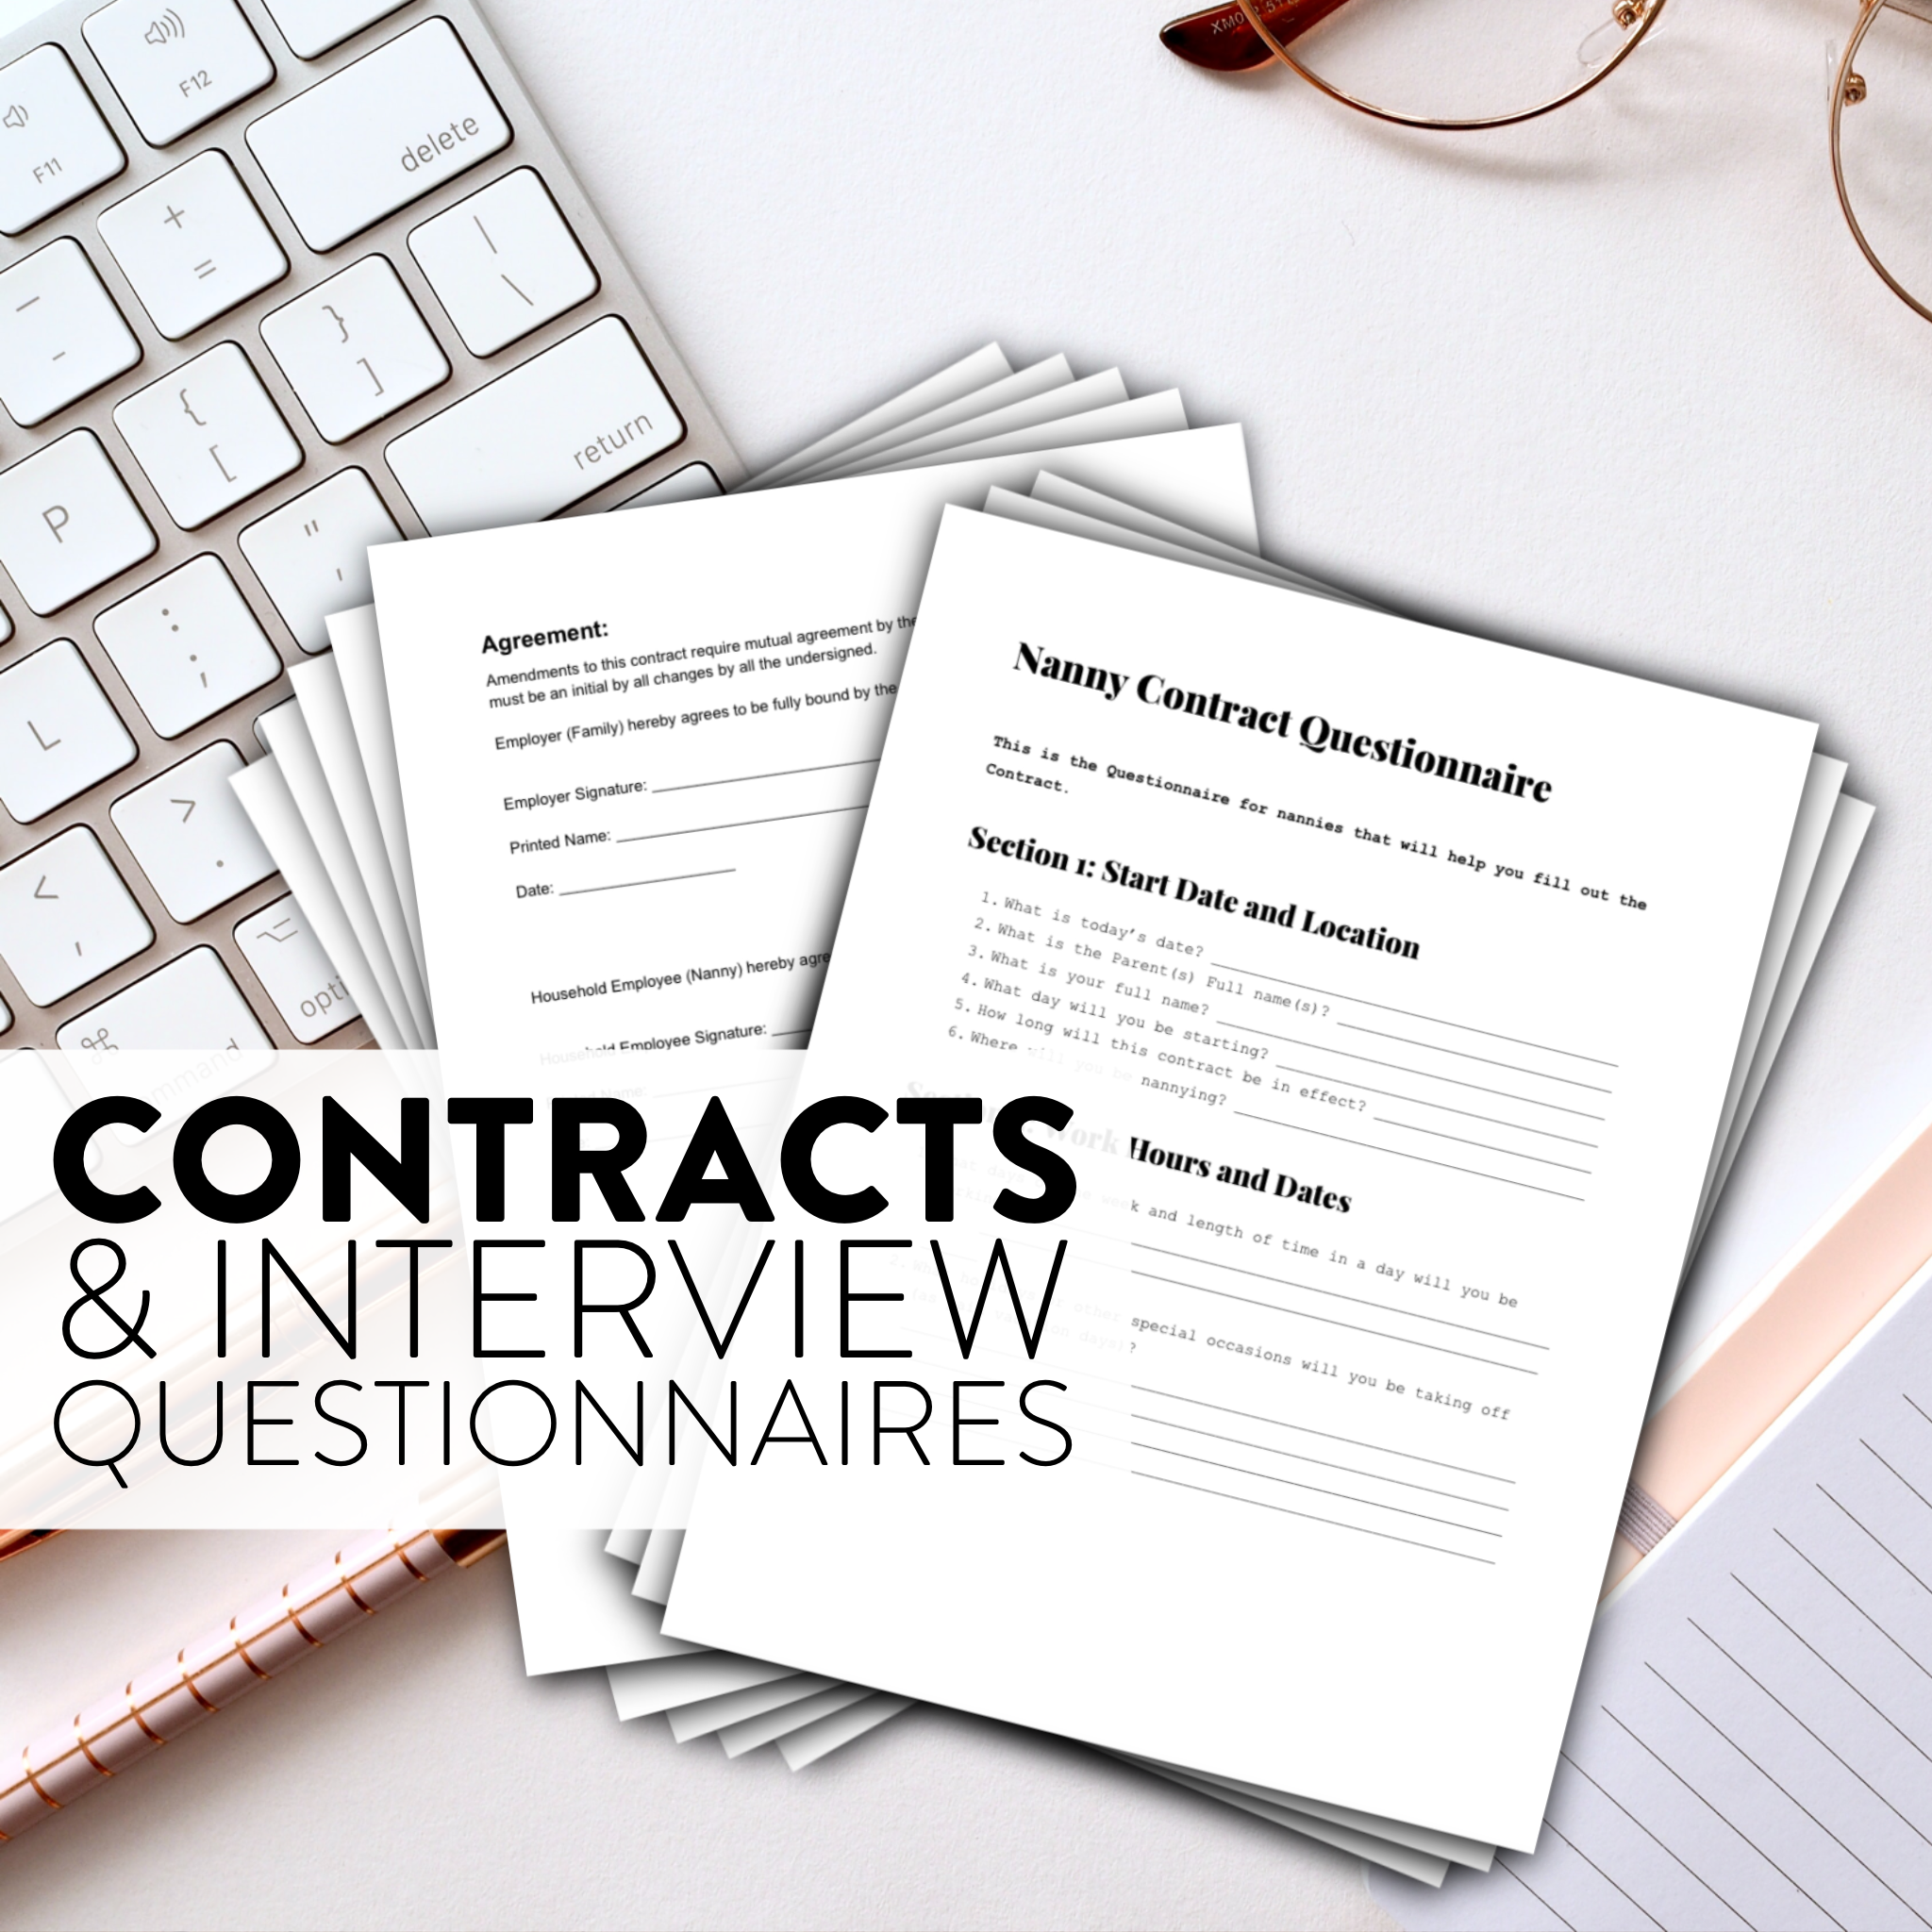 CONTRACTS & INTERVIEW QUESTIONAIRES